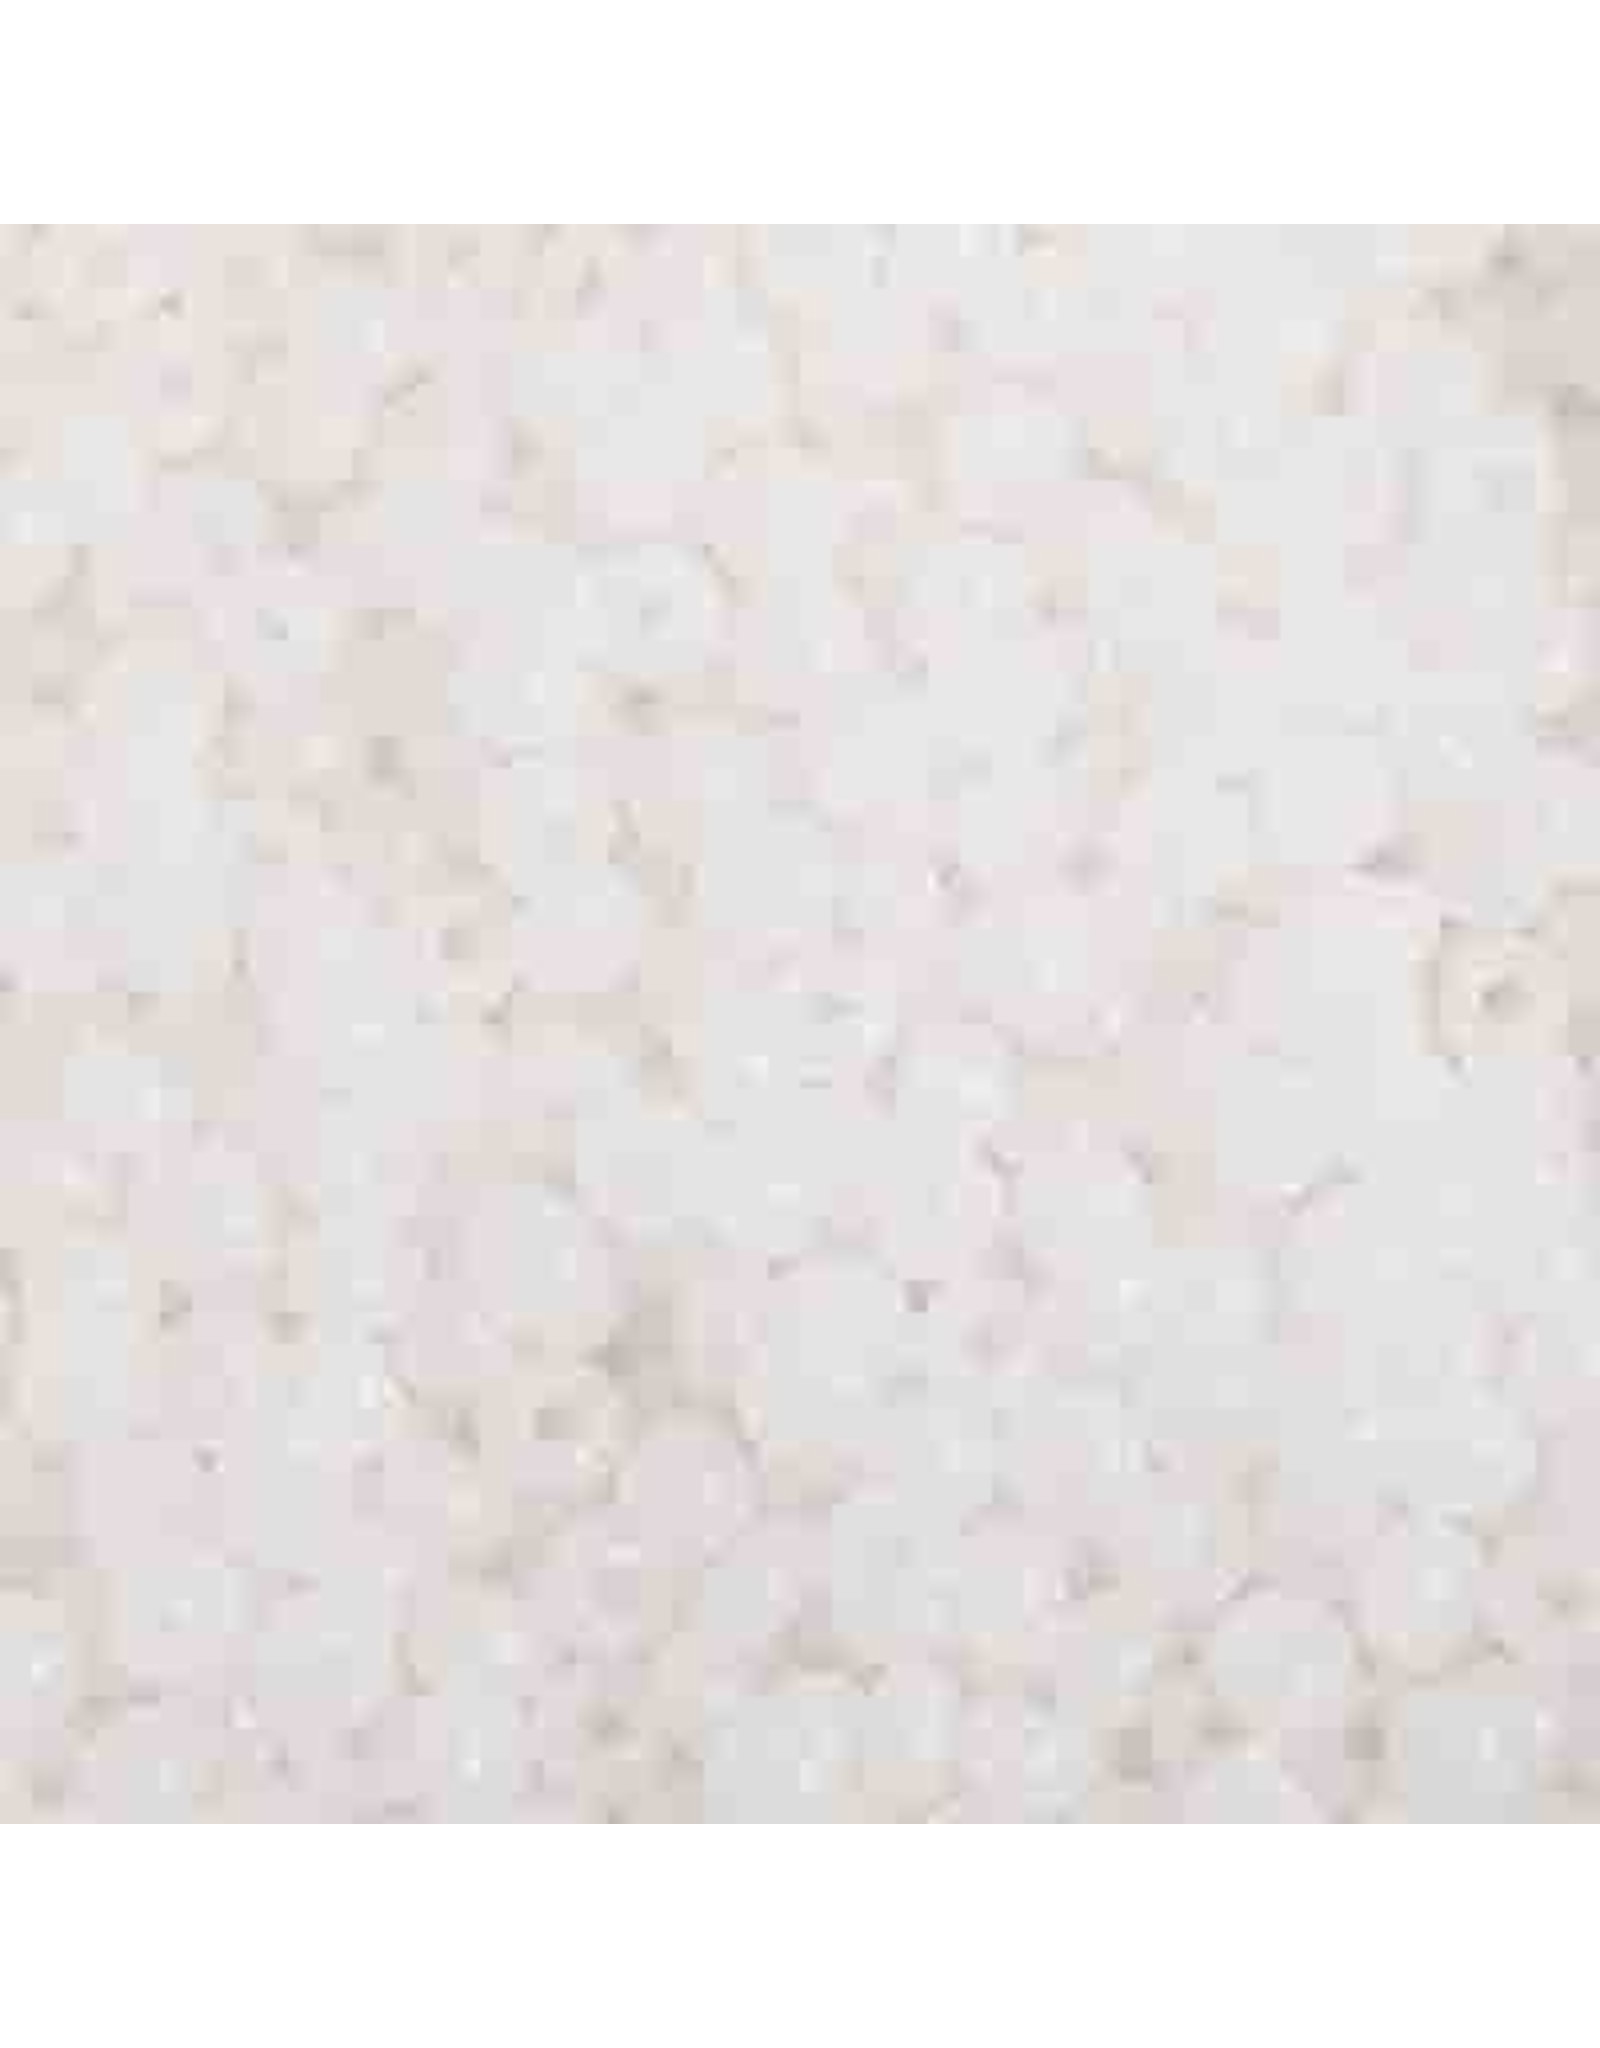 Czech 401050  6   Seed 20g  White Alabaster